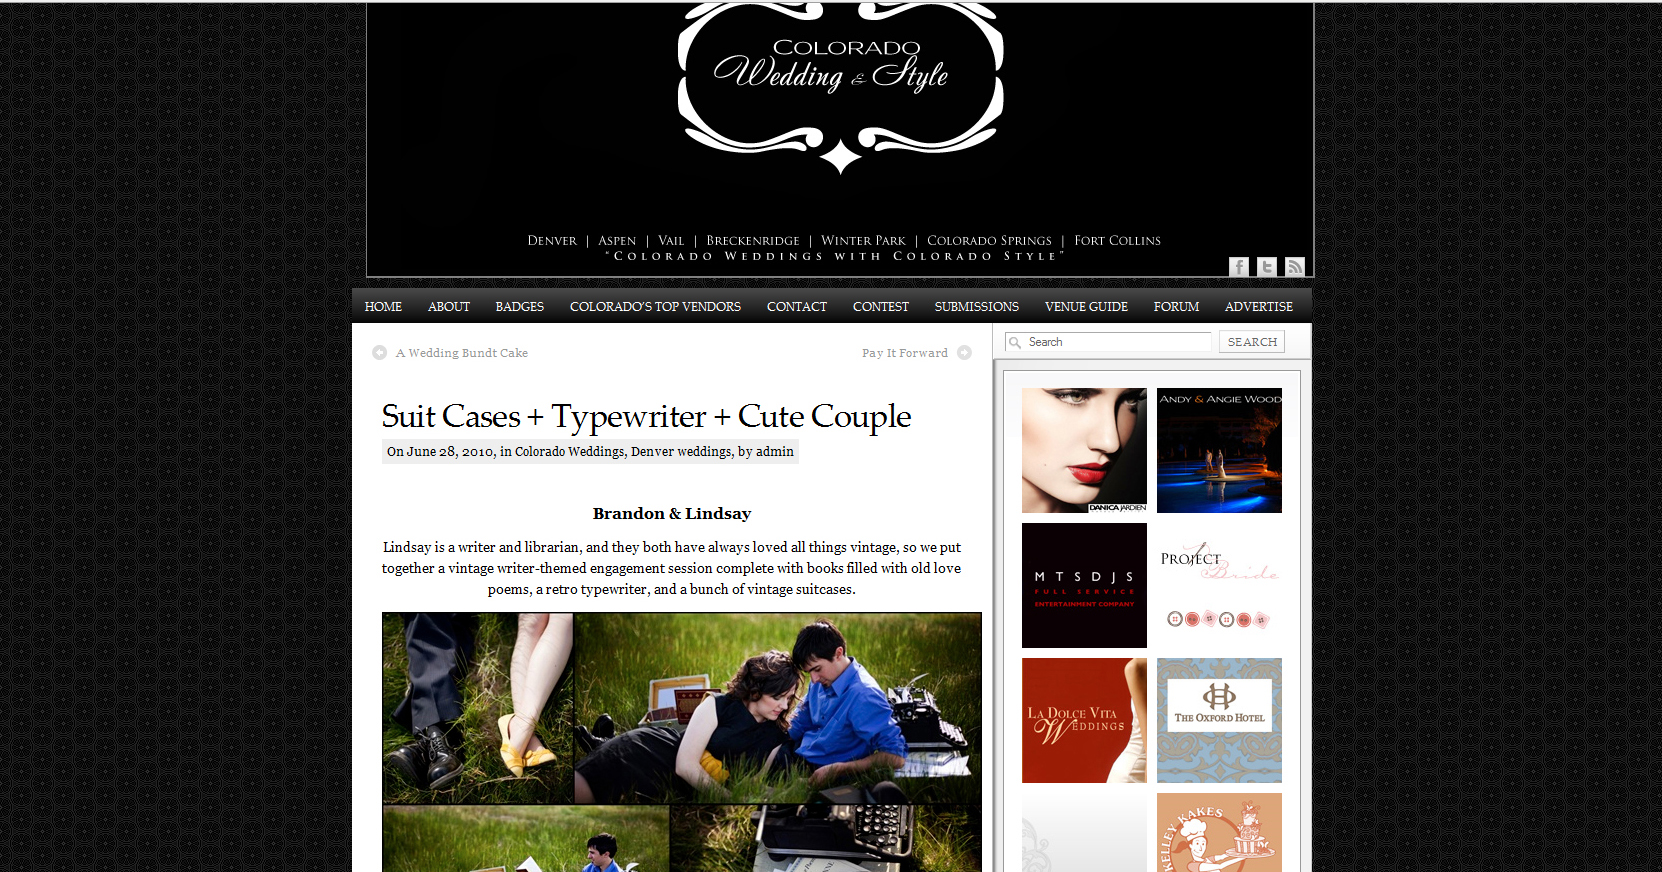 http://coloradoweddingstyle.com/2010/06/suit-cases-typewriter-cute-couple/